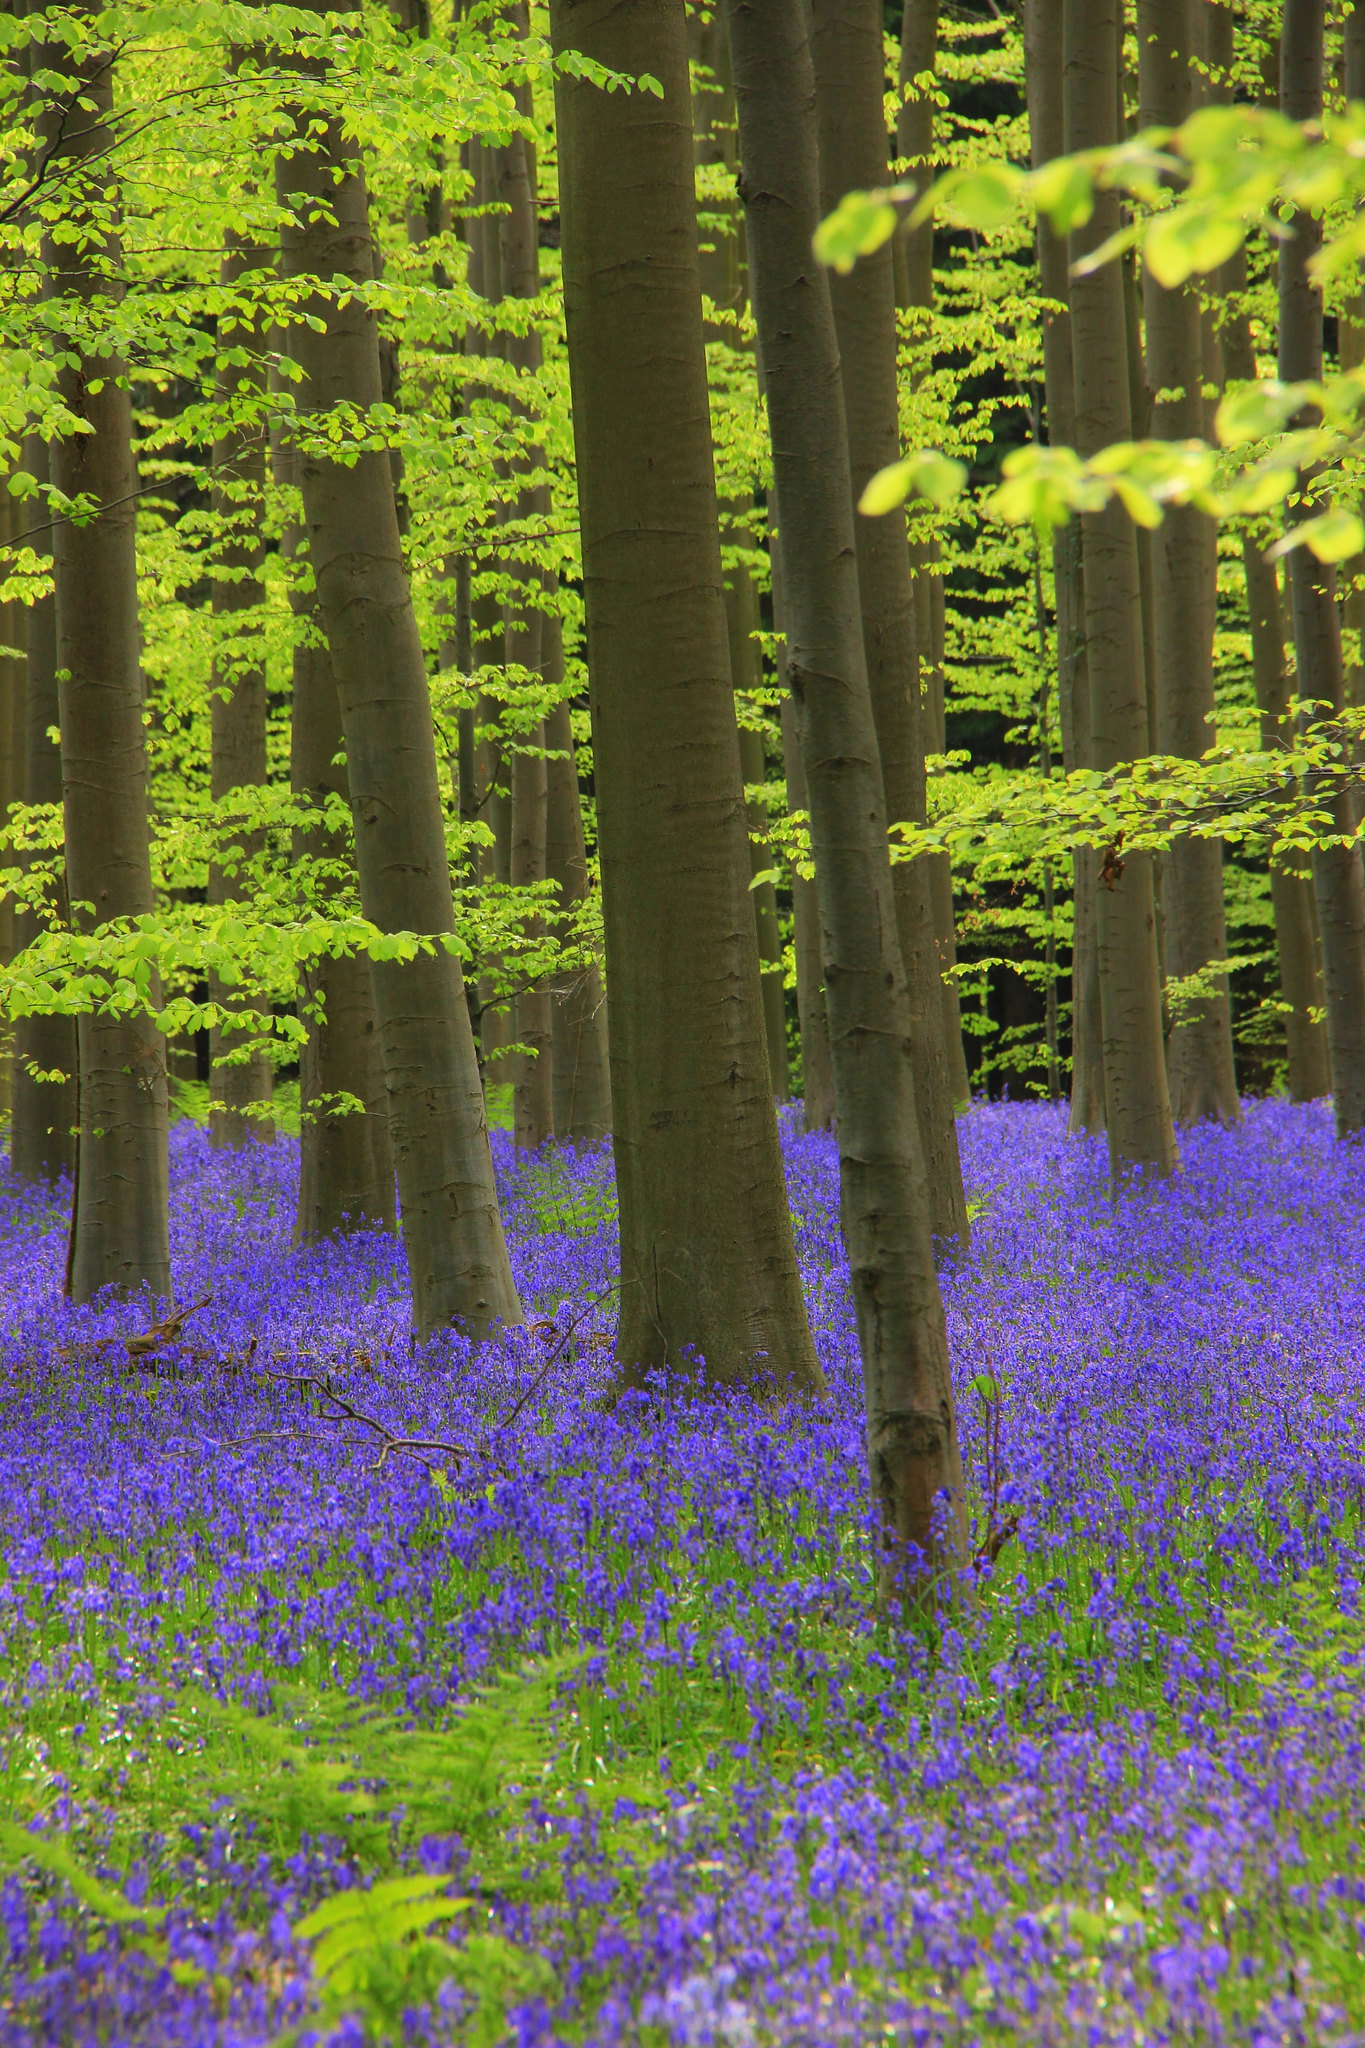 Bluebells in hallerbos blue forest in belgium thrive under beech trees